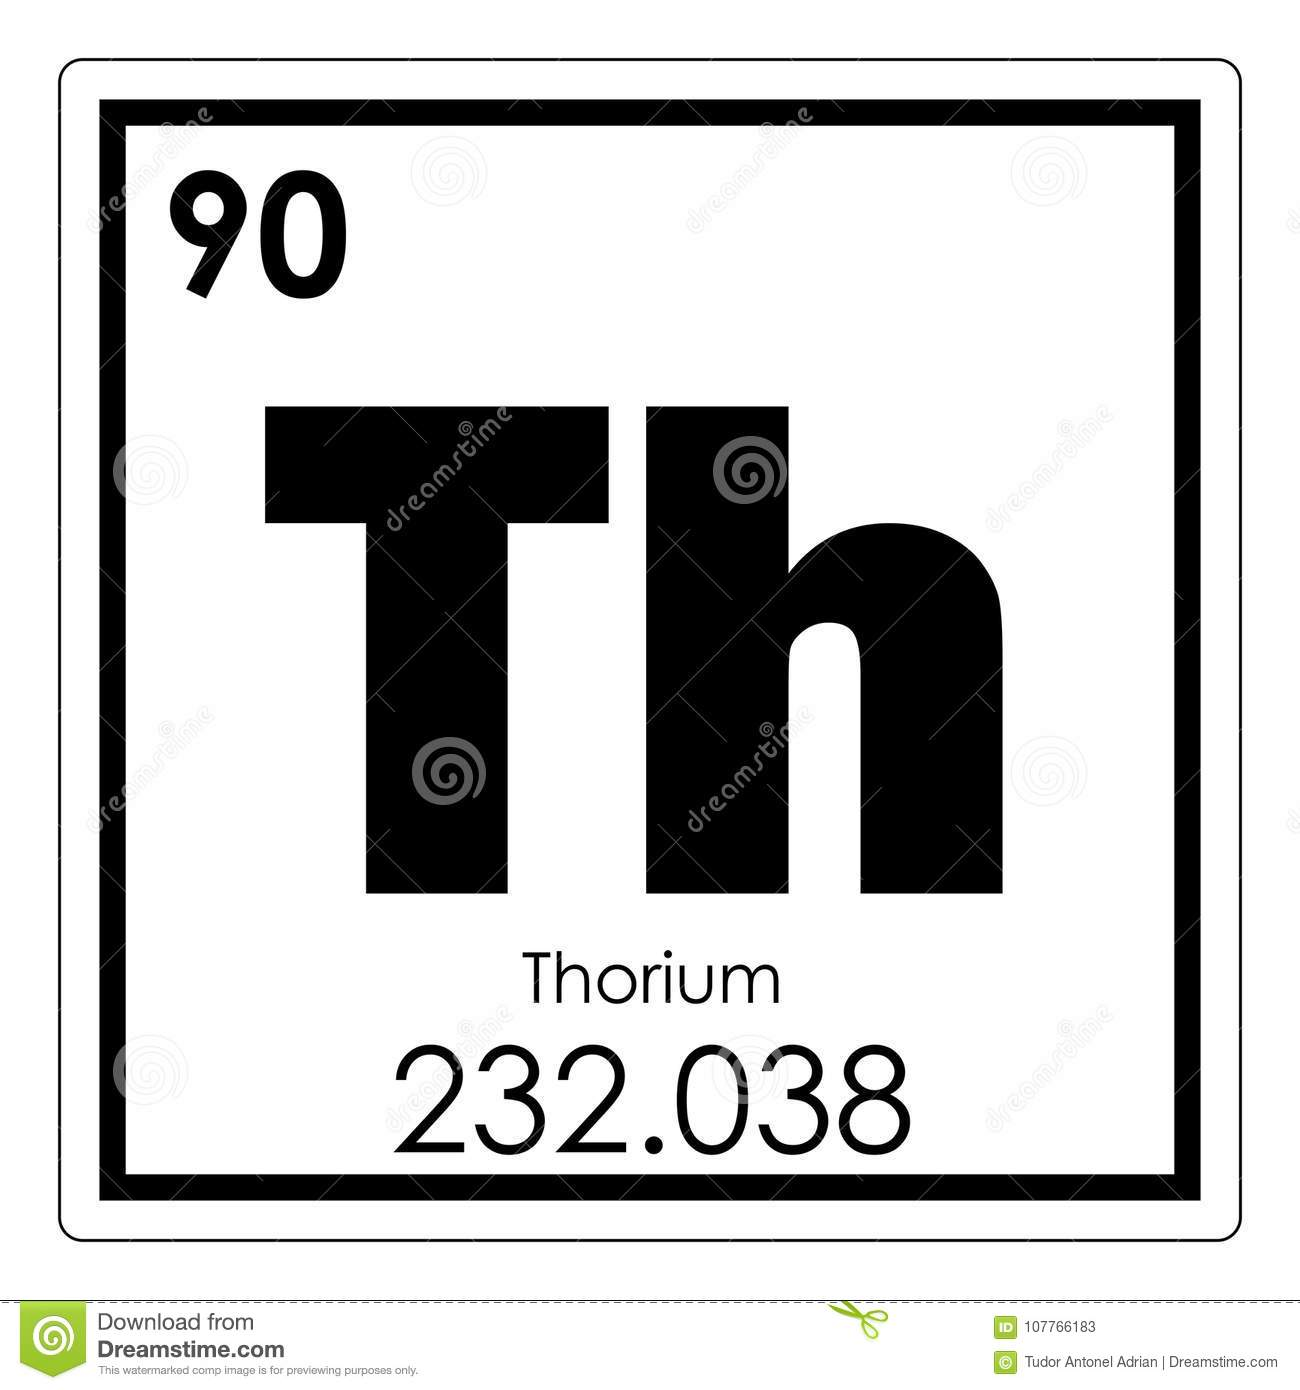 Thorium Chemical Element Stock Illustration Illustration Of